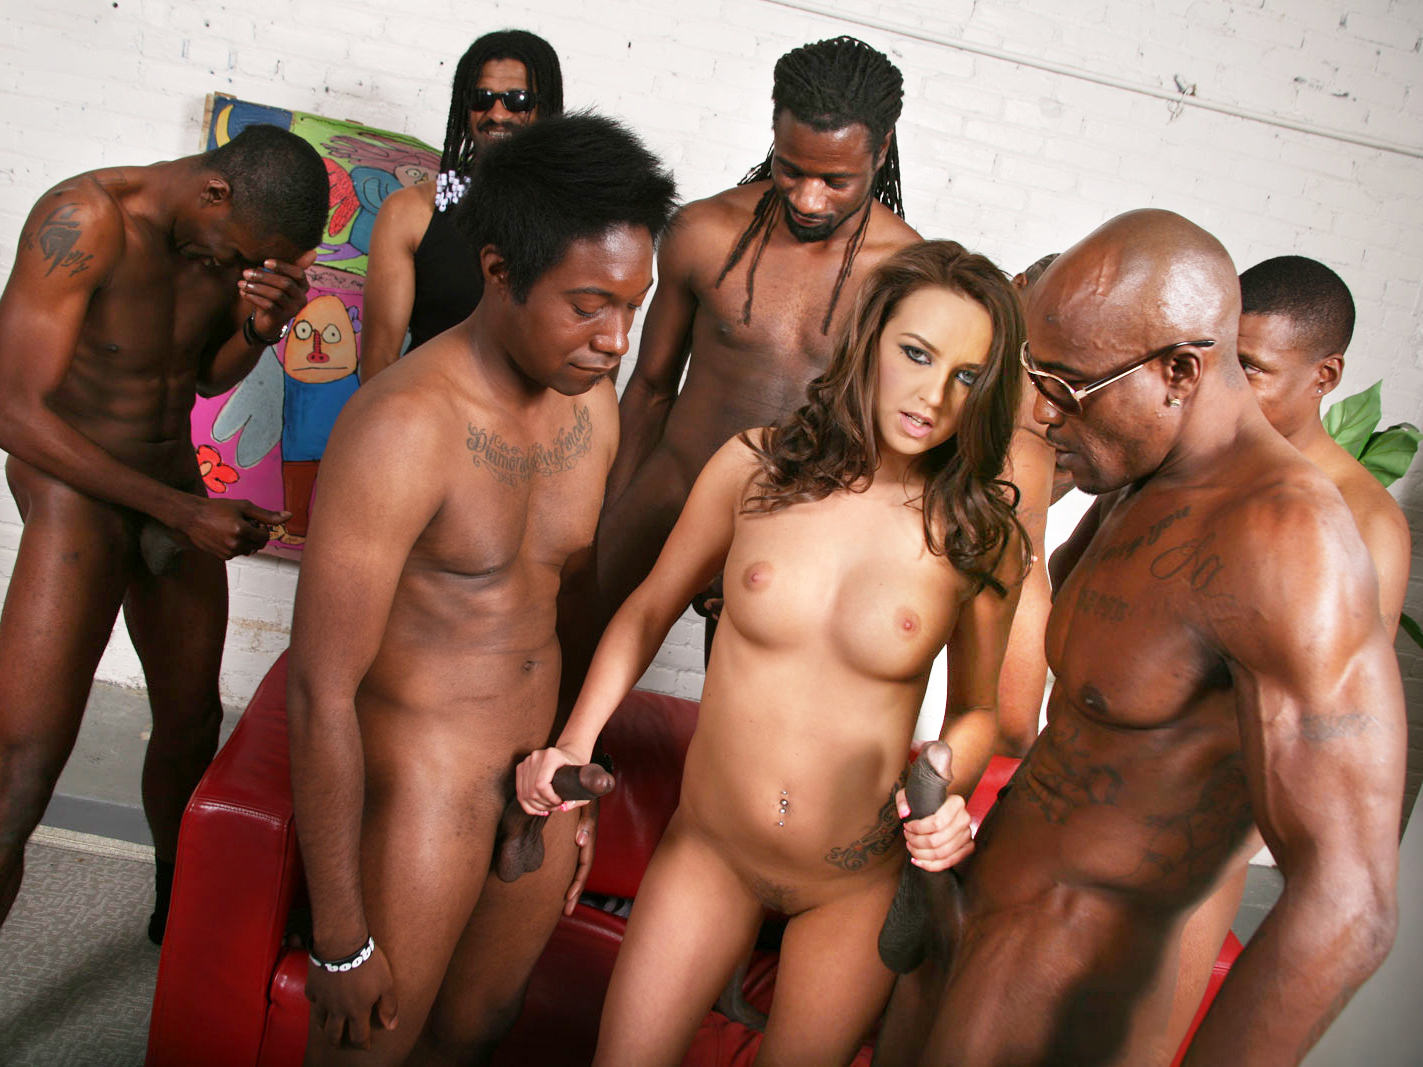 Group Sex,Interracial,Gangbang,Orgy,Blacks on Blondes,Big Cock,Dog Fart Network,HD Videos,Black Gangbang,Black